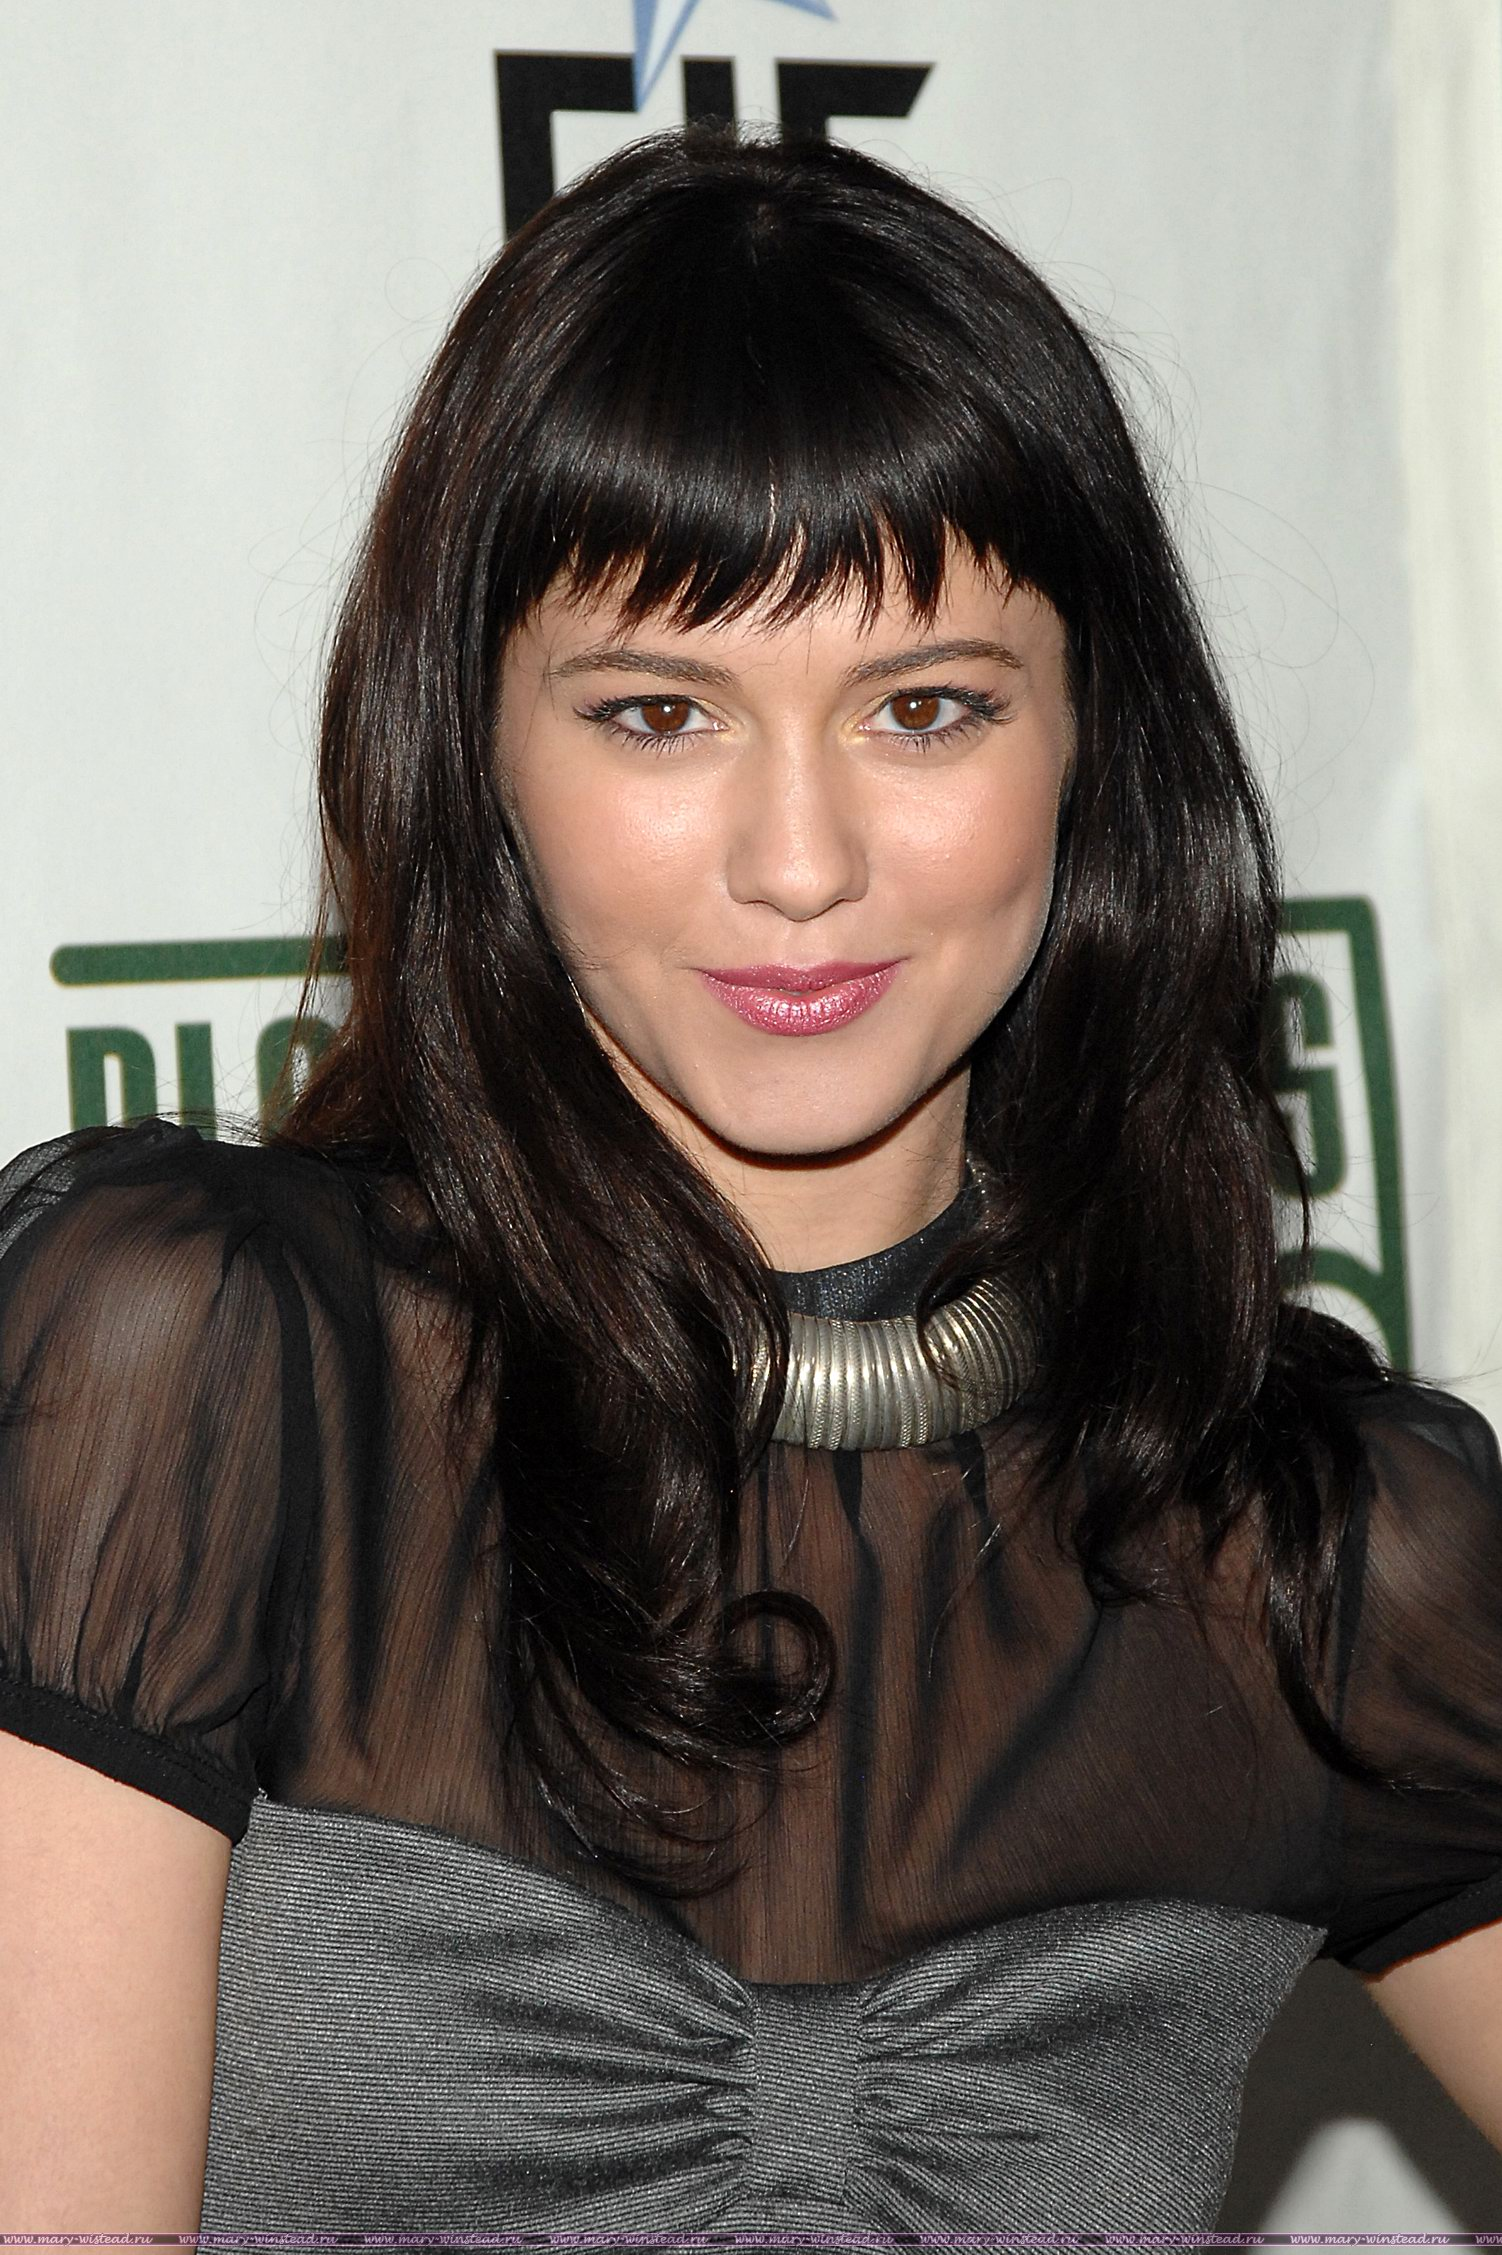 Mary Elizabeth Winstead photo 62